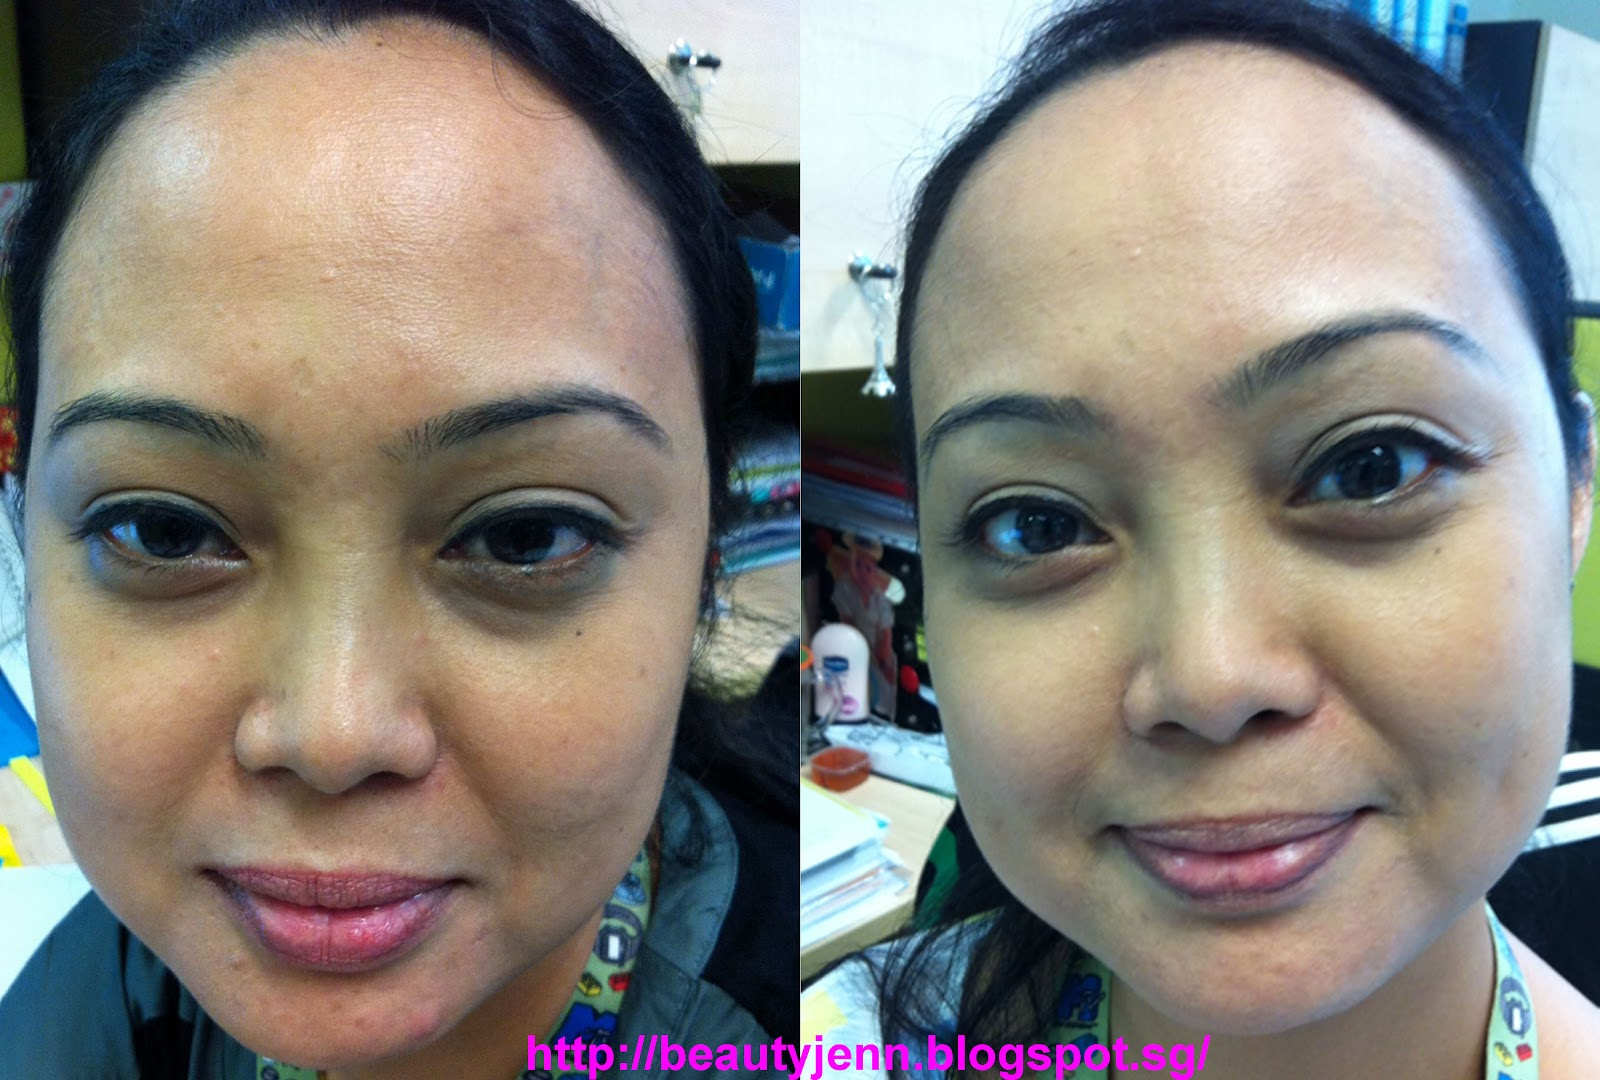 Ageloc Com my life's inspirations!: my colleague 3 weeks after taking